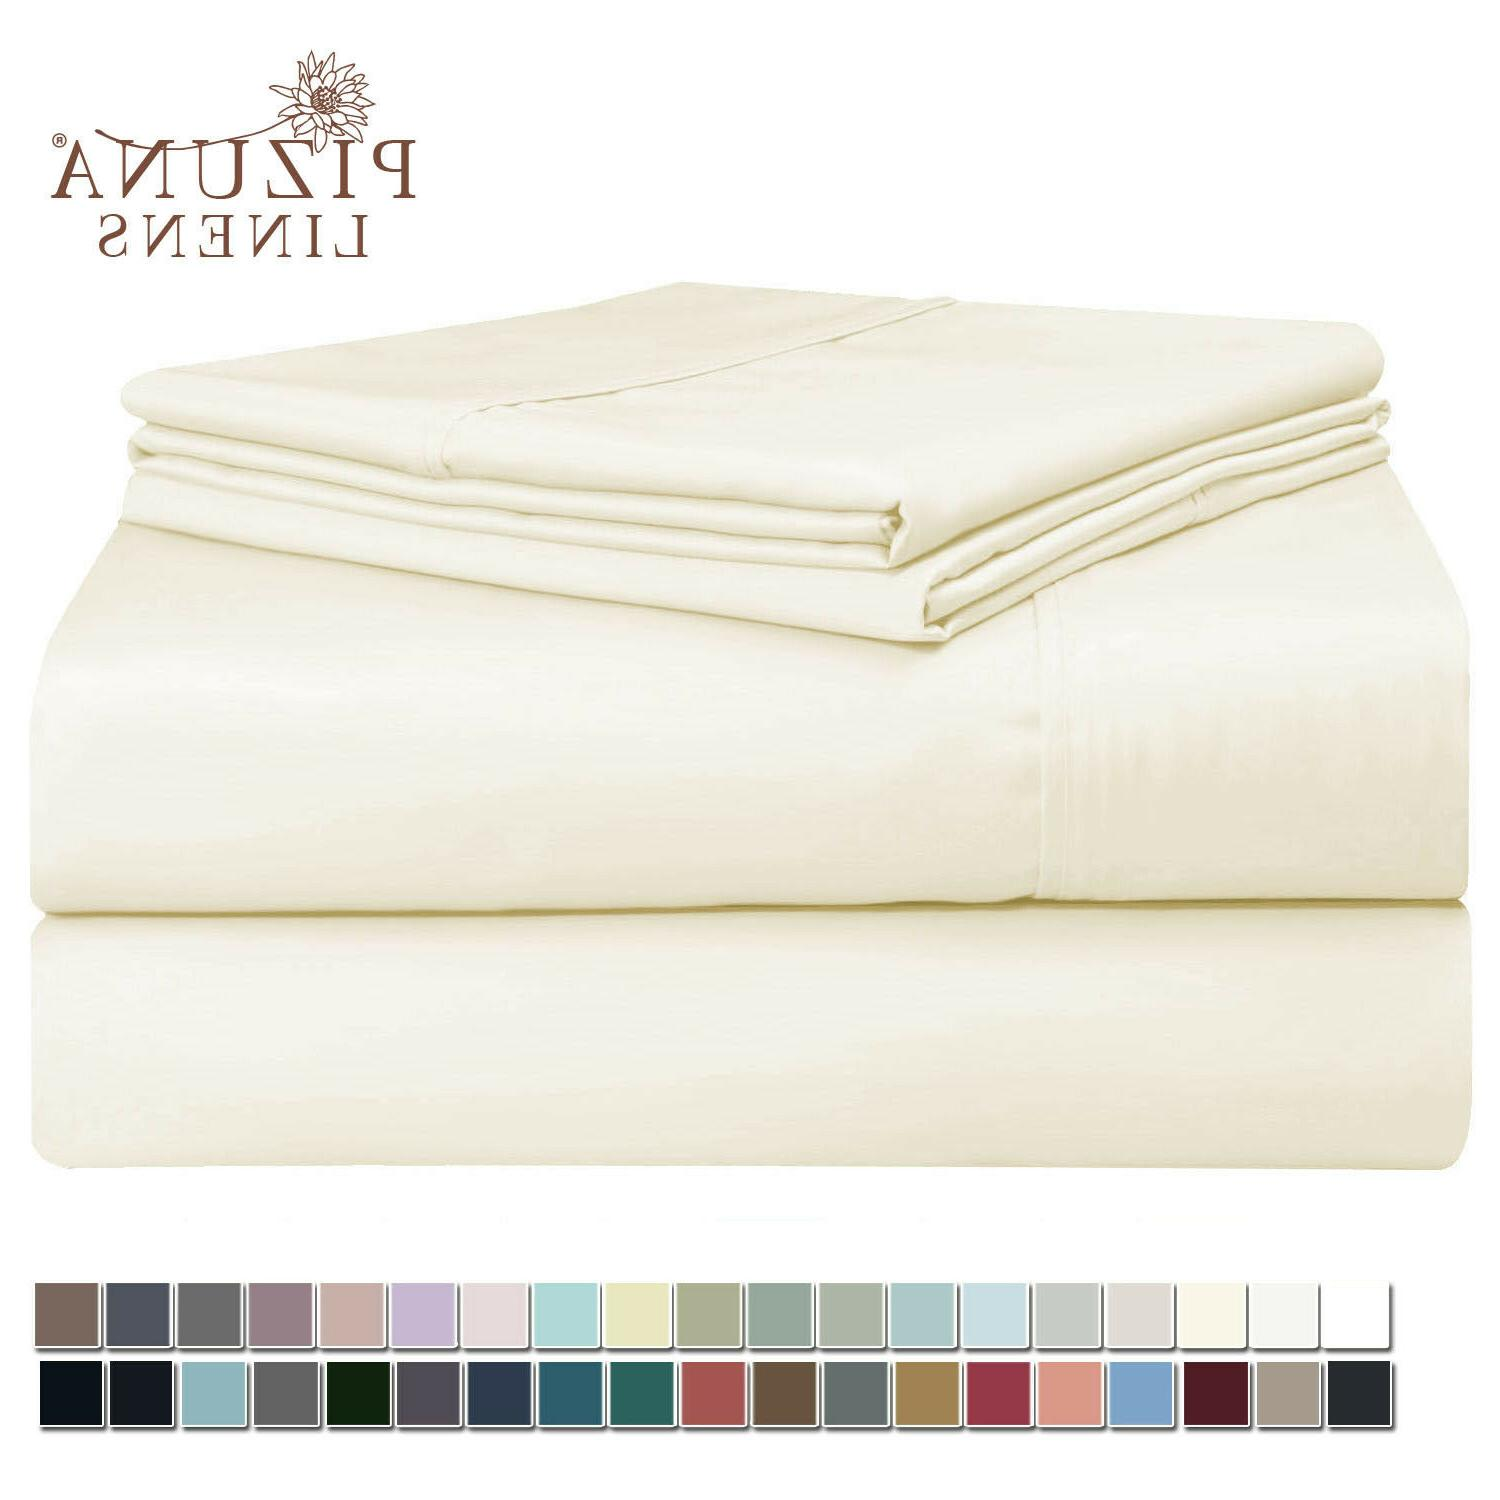 HC COLLECTION Hotel Luxury Bed Sheets Set Softest Bedding An